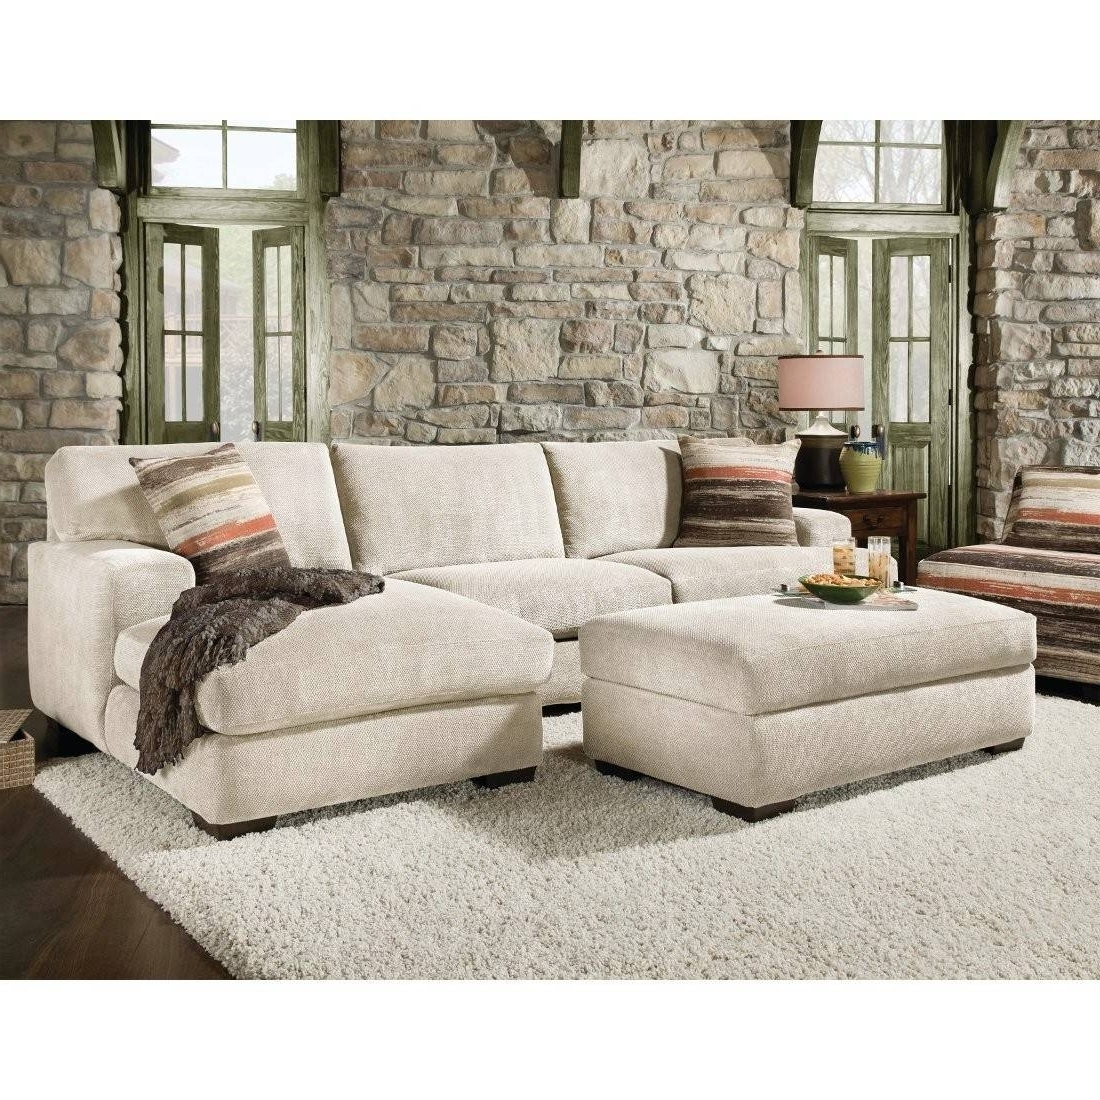 Most Popular Beautiful Down Filled Sectional Sofa 75 For Your Modern Sofa Ideas Intended For Down Filled Sectional Sofas (View 3 of 20)